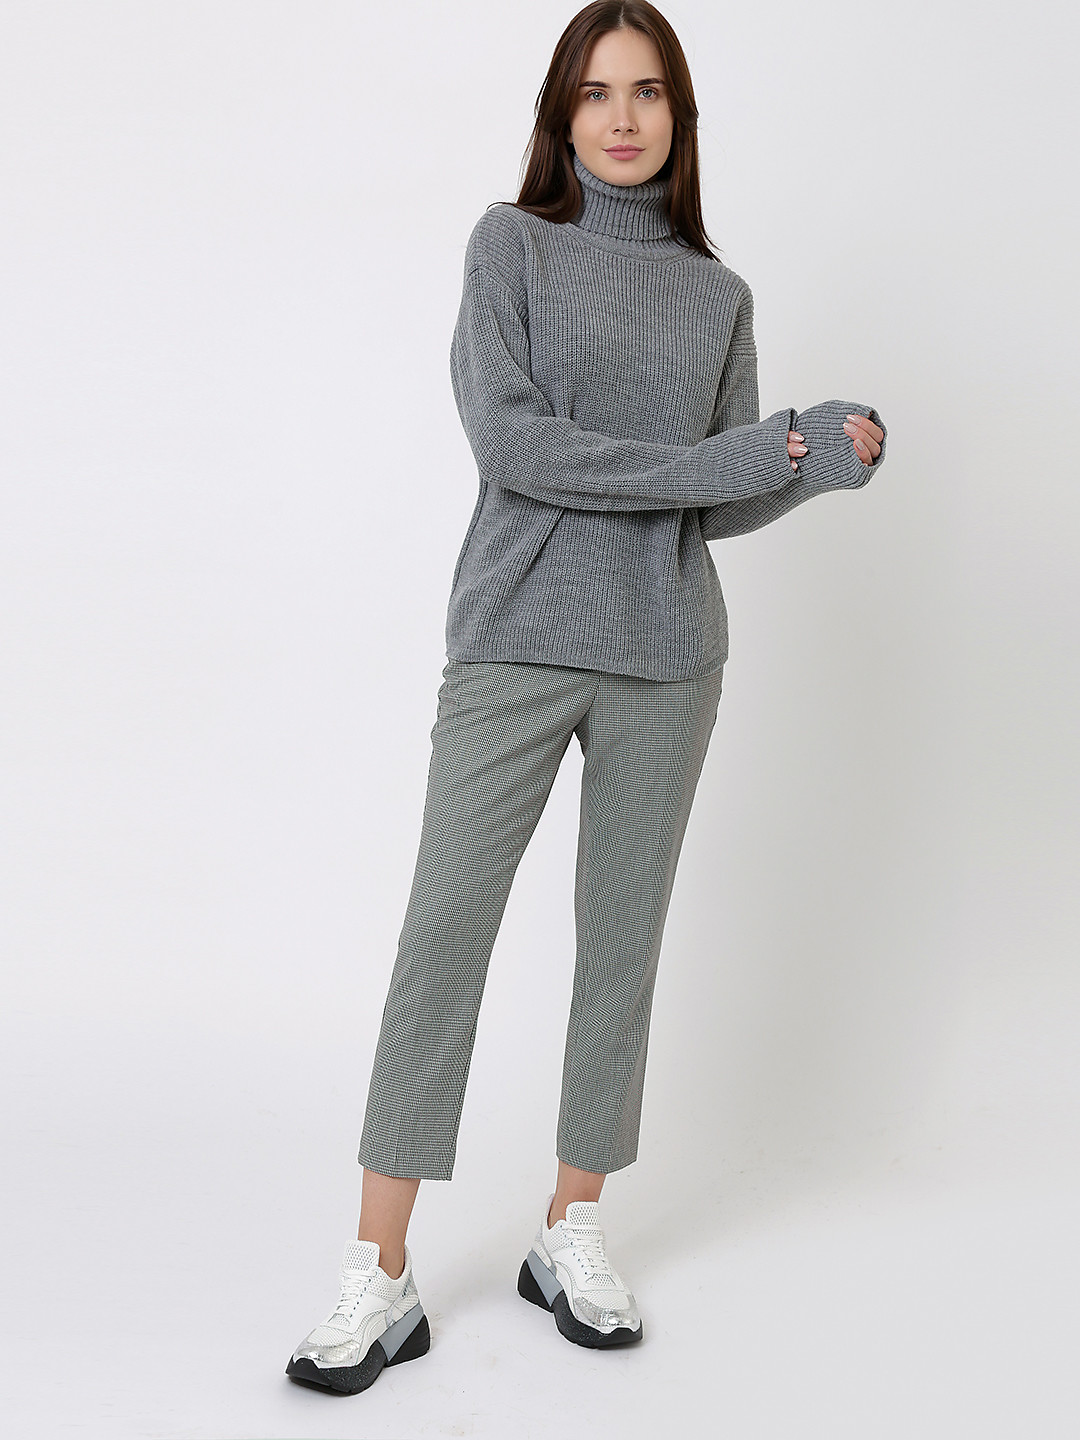 Джемперы Aim Clothing S 707 PHR 96 grey